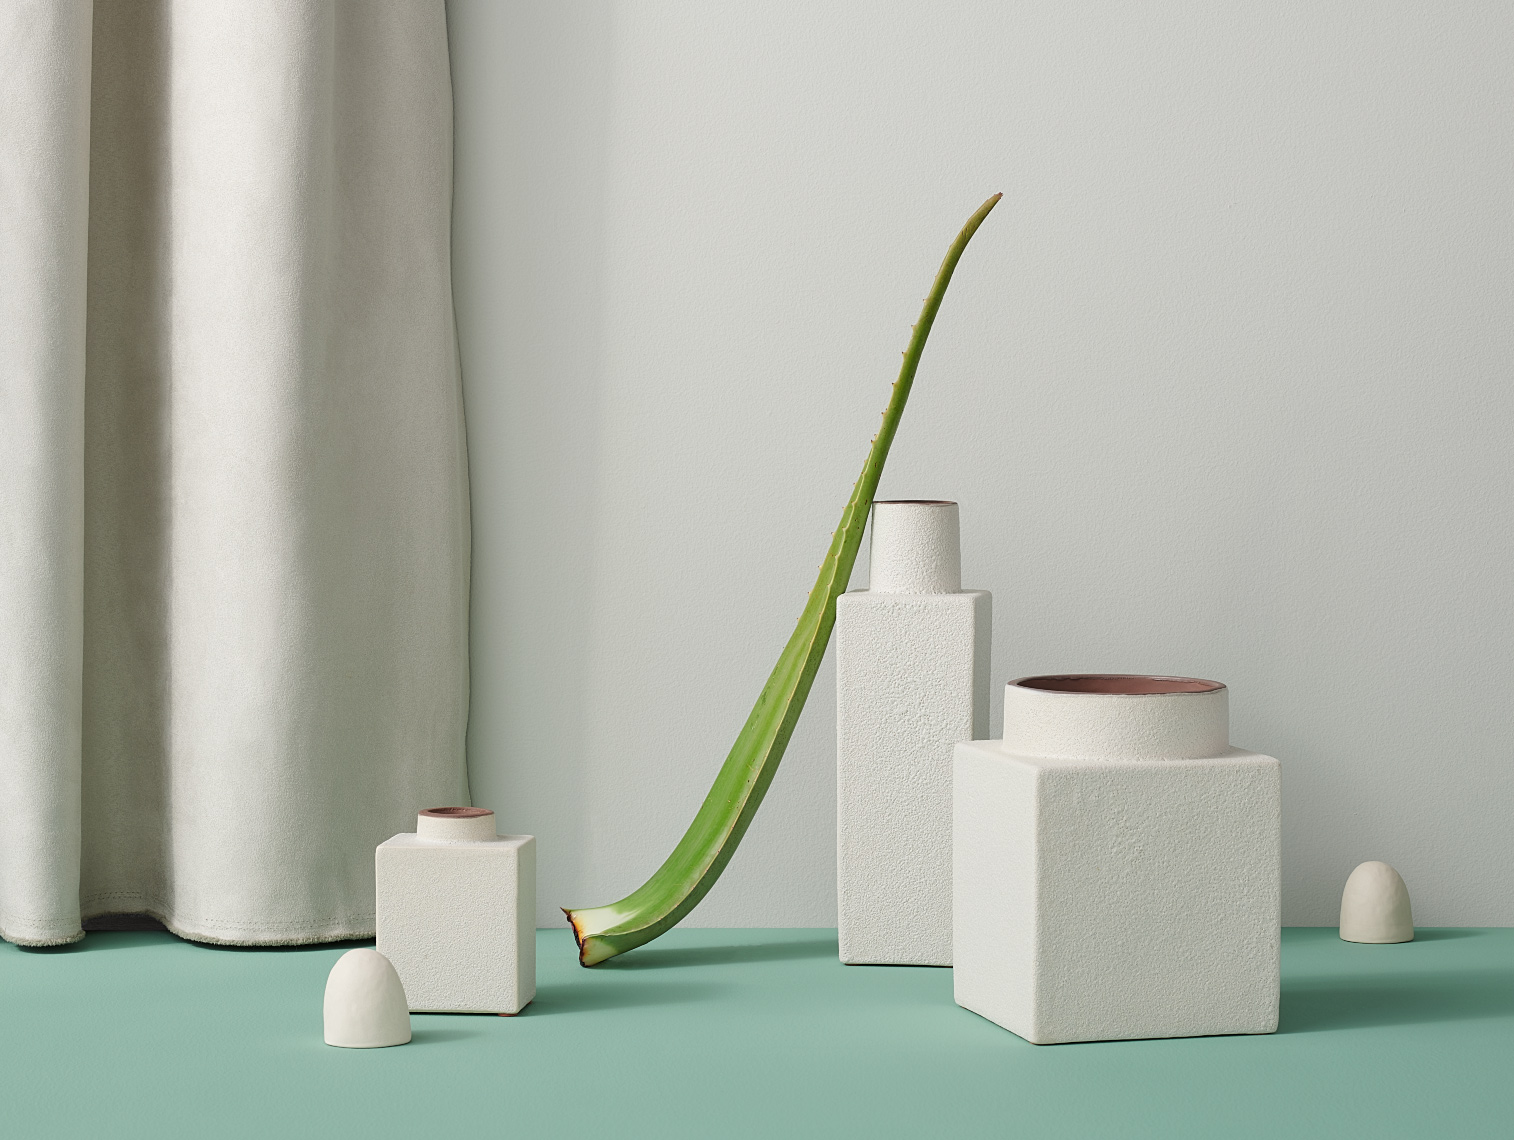 Aloe plant with white textured CB2 vases on green surface still life photo in Minneapolis Minnesota